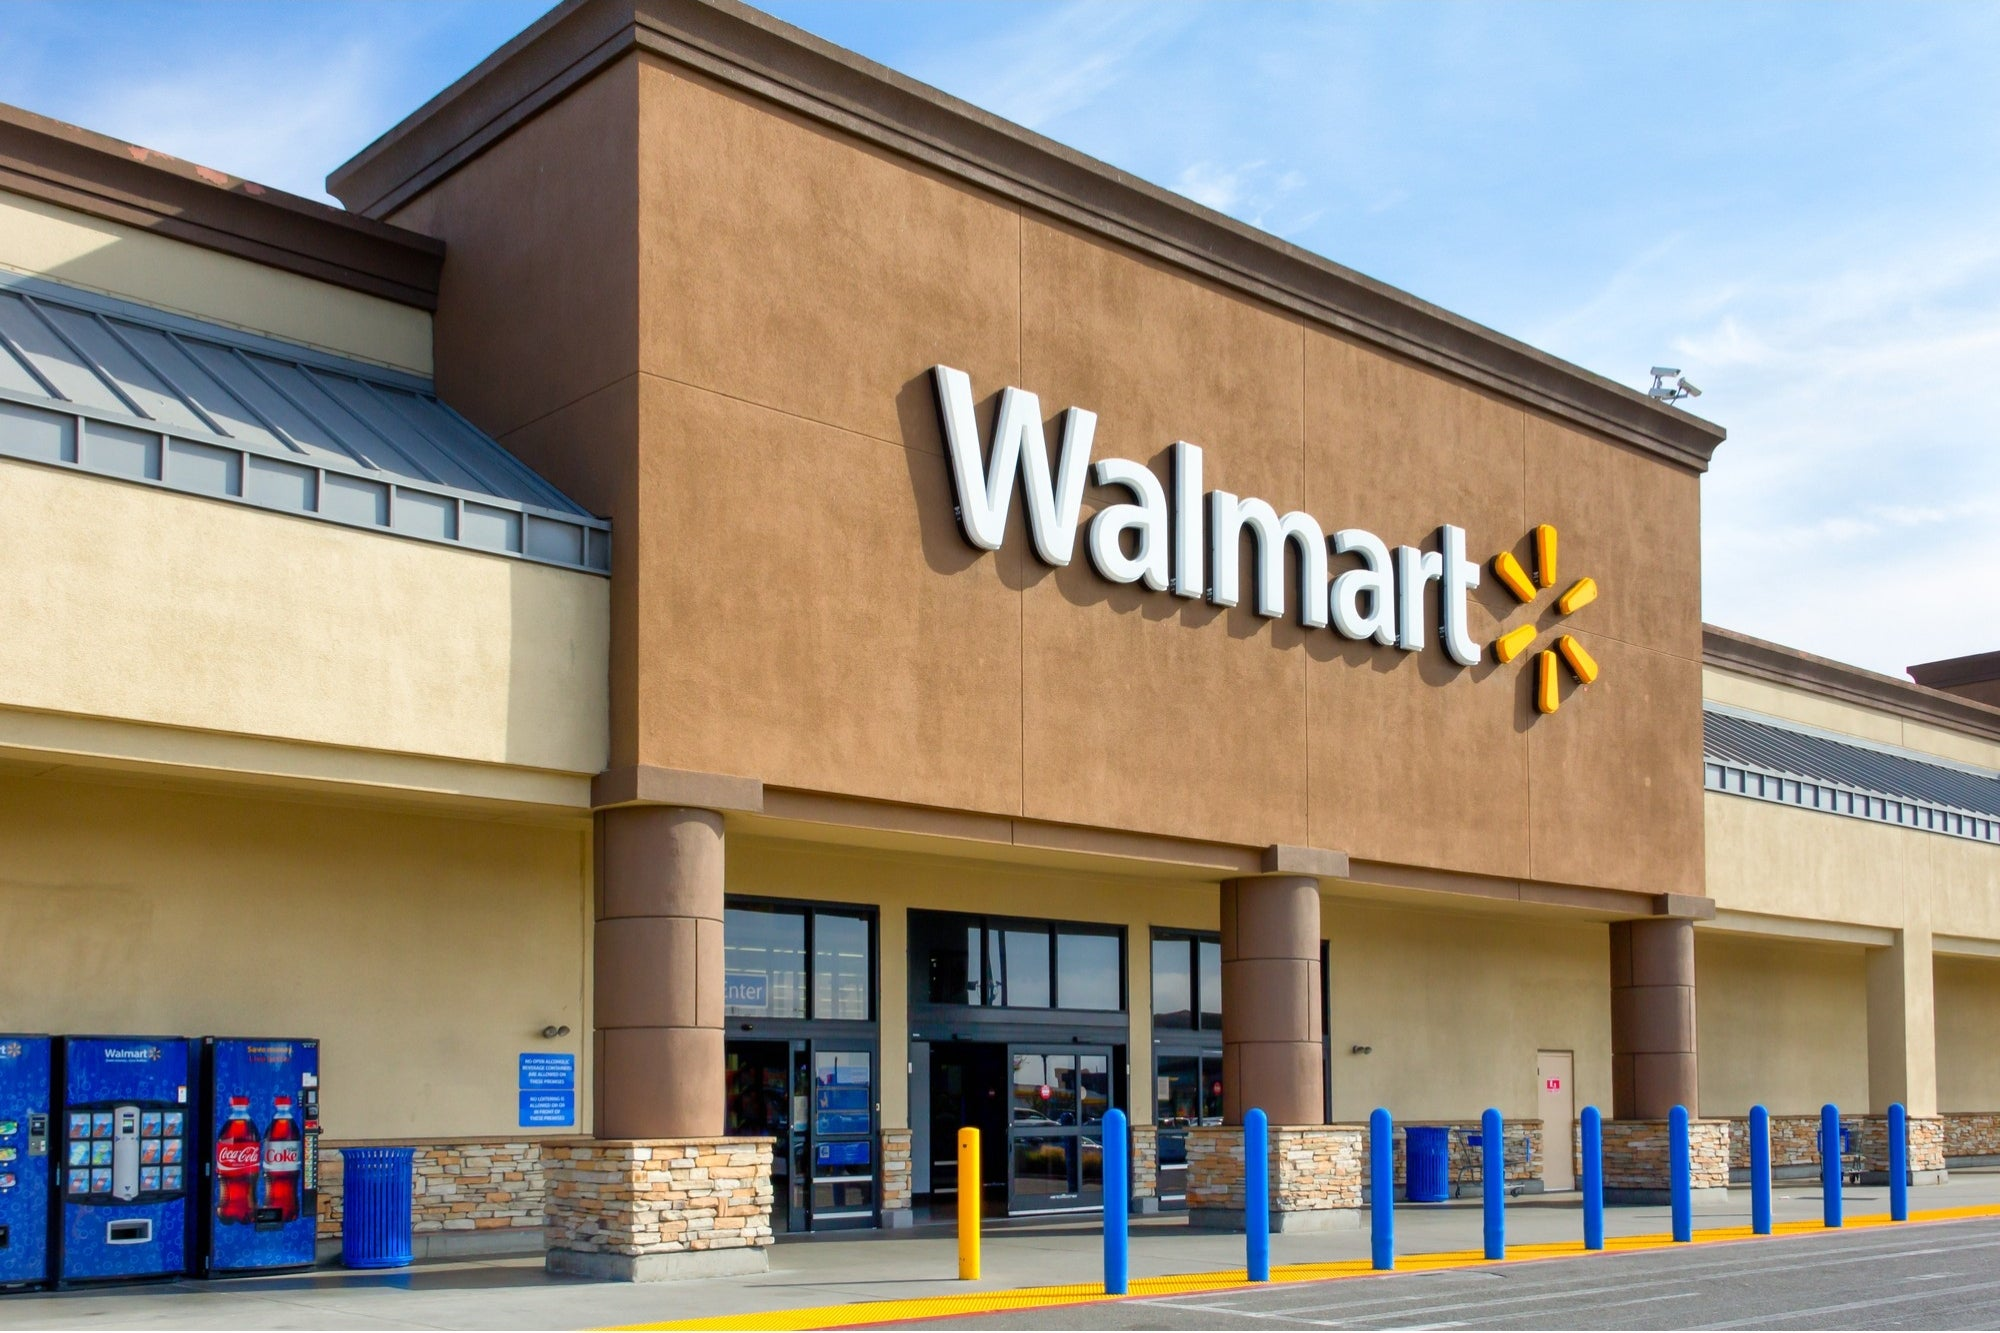 Walmart to launch its own fintech in partnership with Ribbit Capital